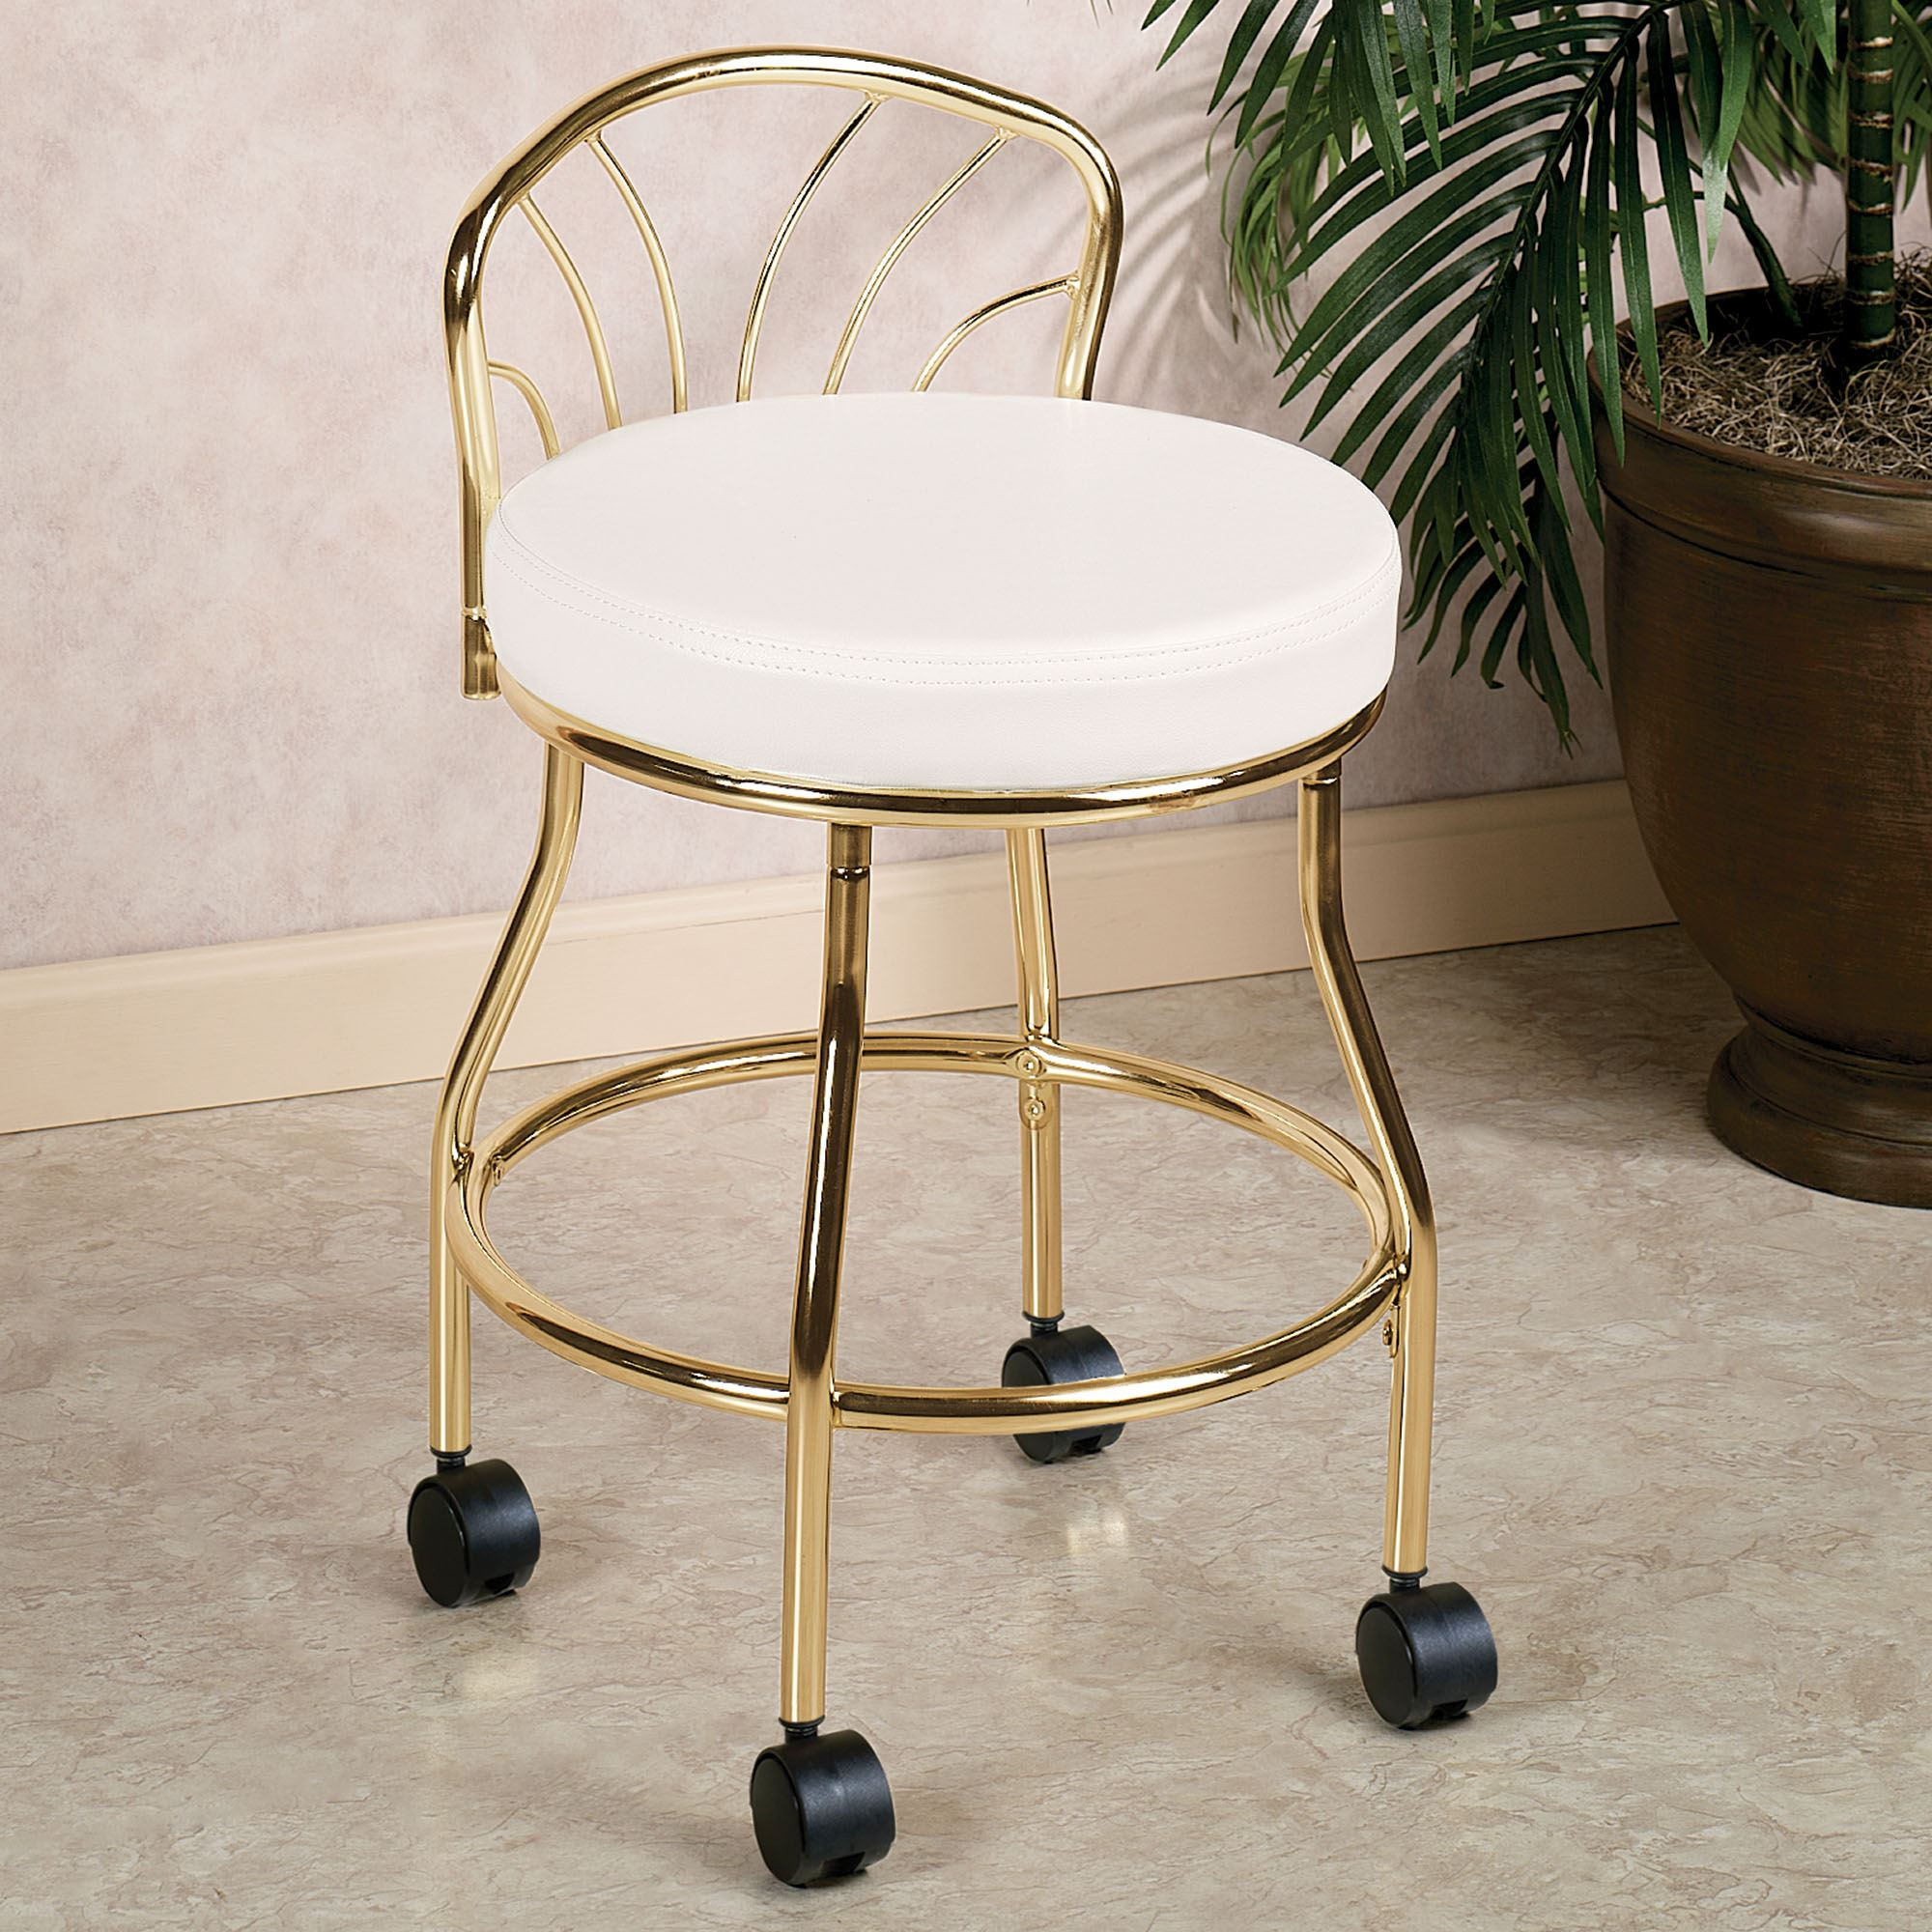 Fantastic Flare Back Metallic Finish Vanity Chair With Casters Creativecarmelina Interior Chair Design Creativecarmelinacom